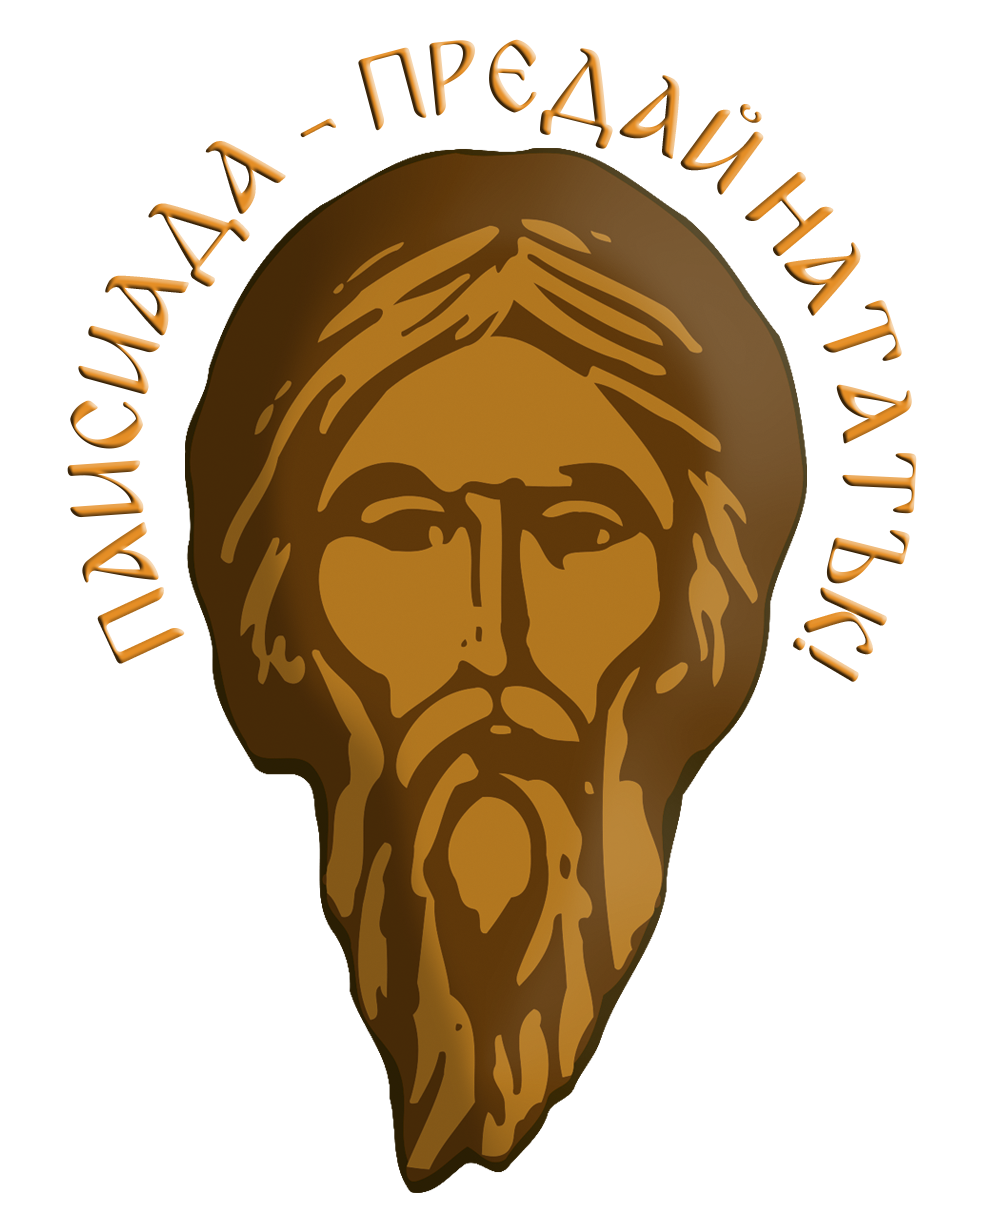 http://paissiada.com/ru/our-acknowledgements;jsessionid=98A535F3E9436550E01A55E6C1FBD53D?p_auth=O2inRg52&p_p_auth=E5hk0Qq5&p_p_id=49&p_p_lifecycle=1&p_p_state=normal&p_p_mode=view&_49_struts_action=%2Fmy_sites%2Fview&_49_groupId=466368&_49_privateLayout=false